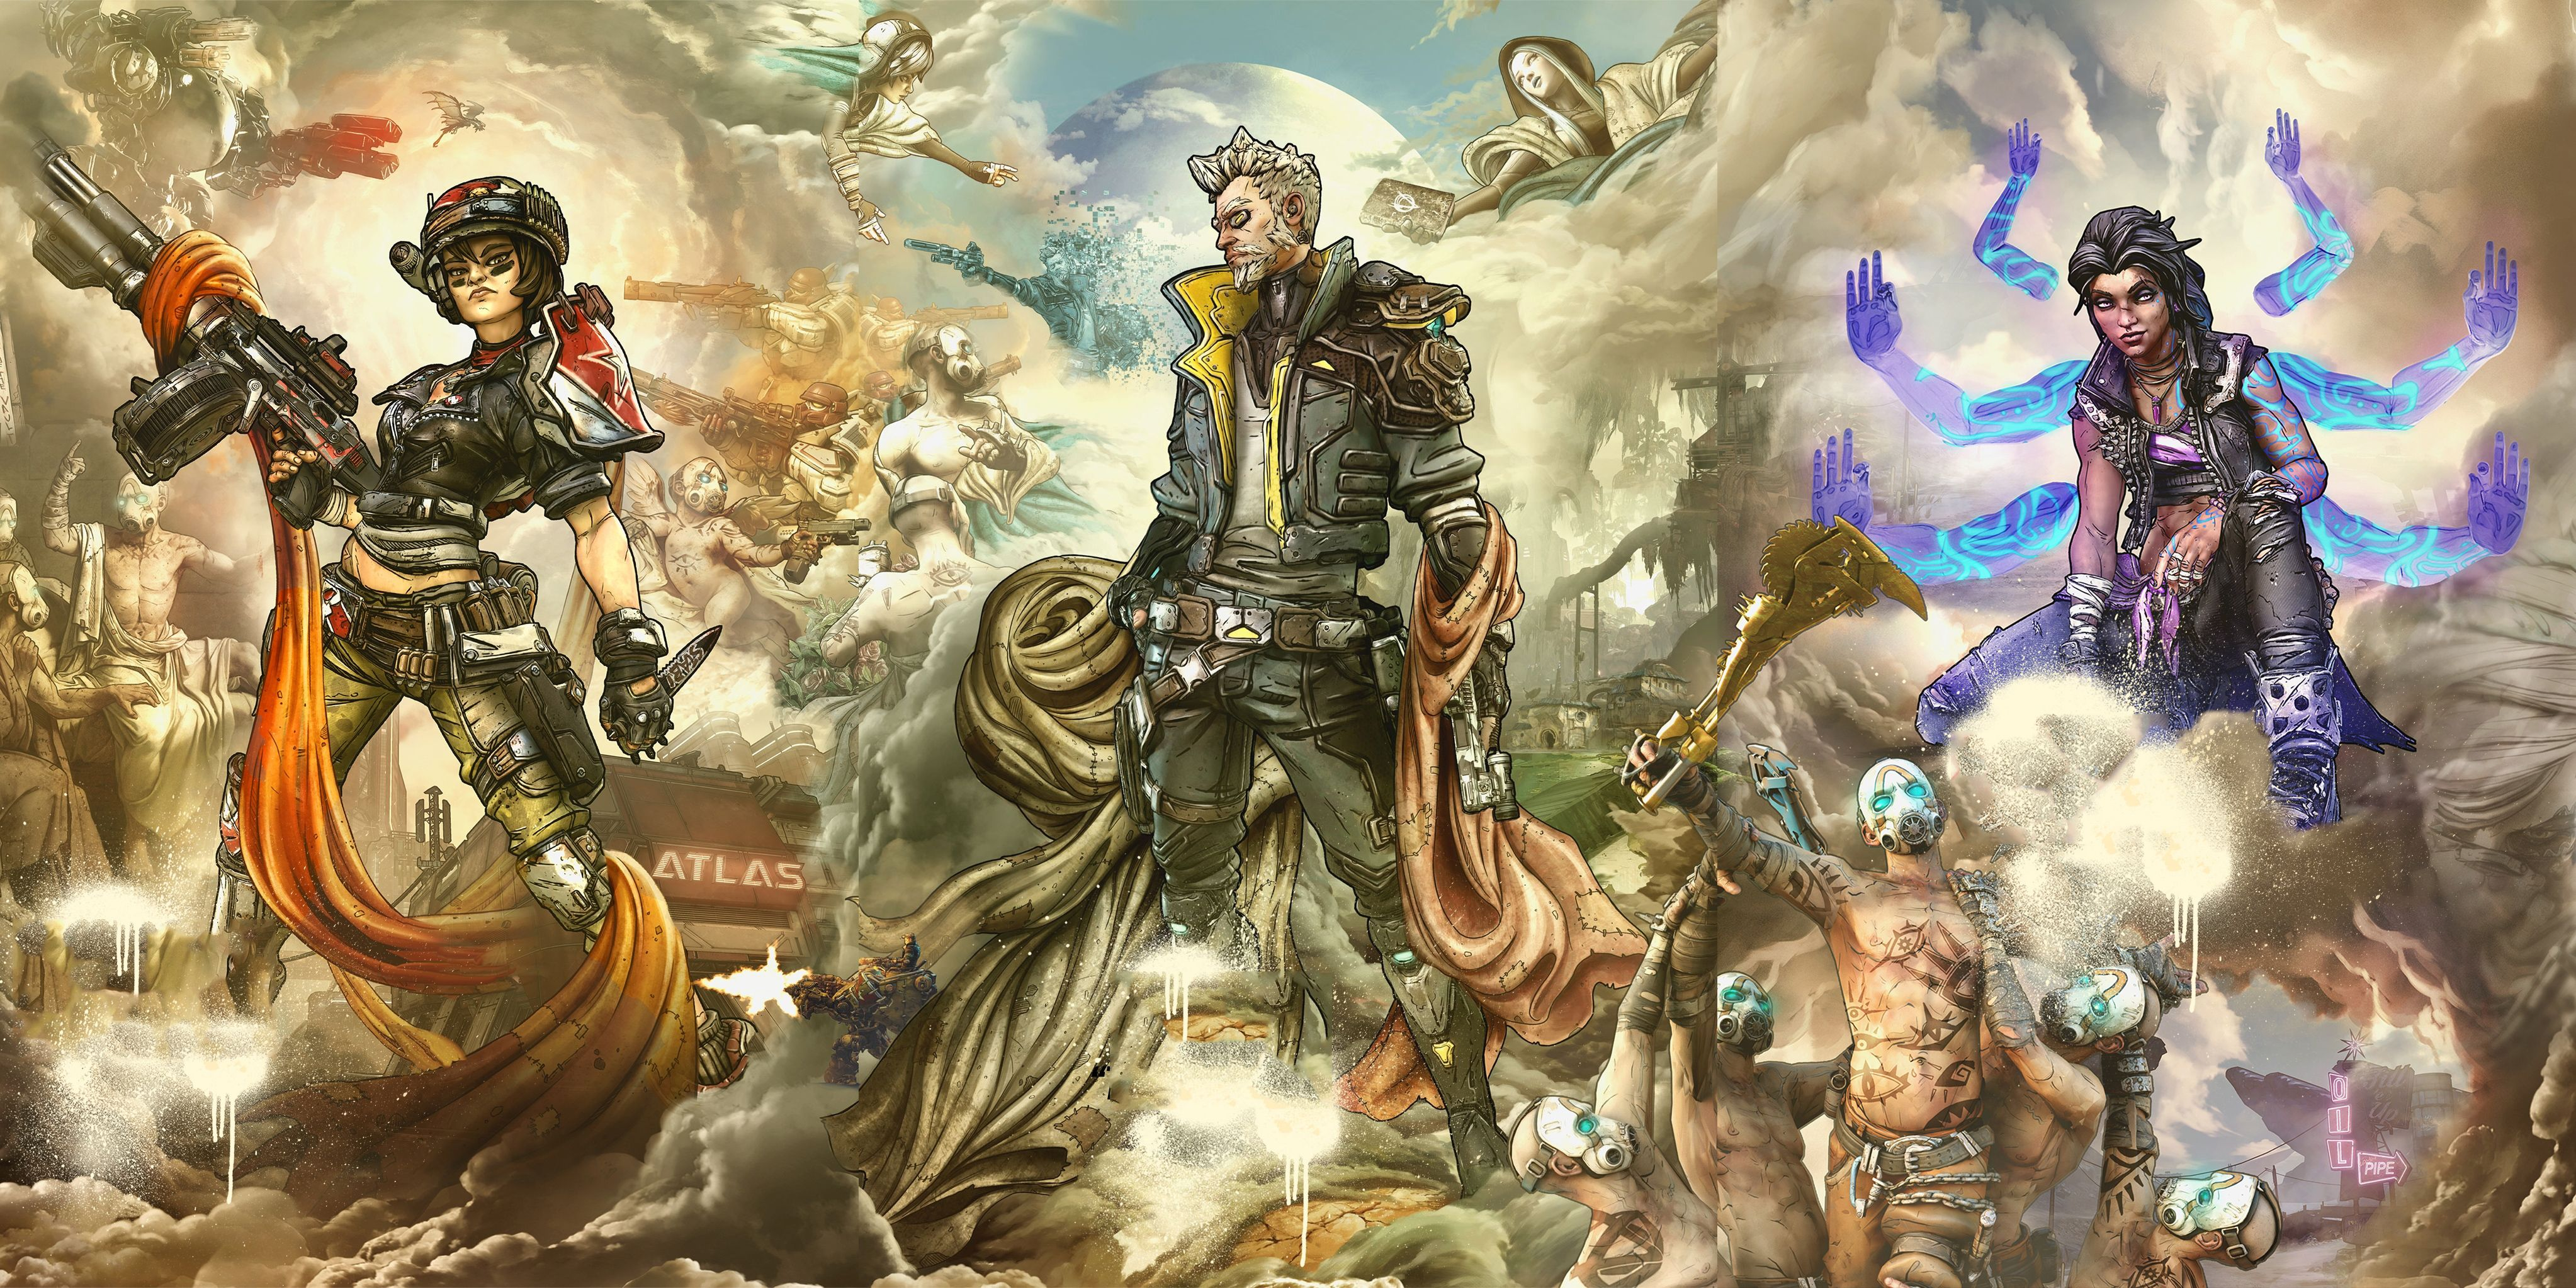 Borderlands 3 Wallpapers Top Free Borderlands 3